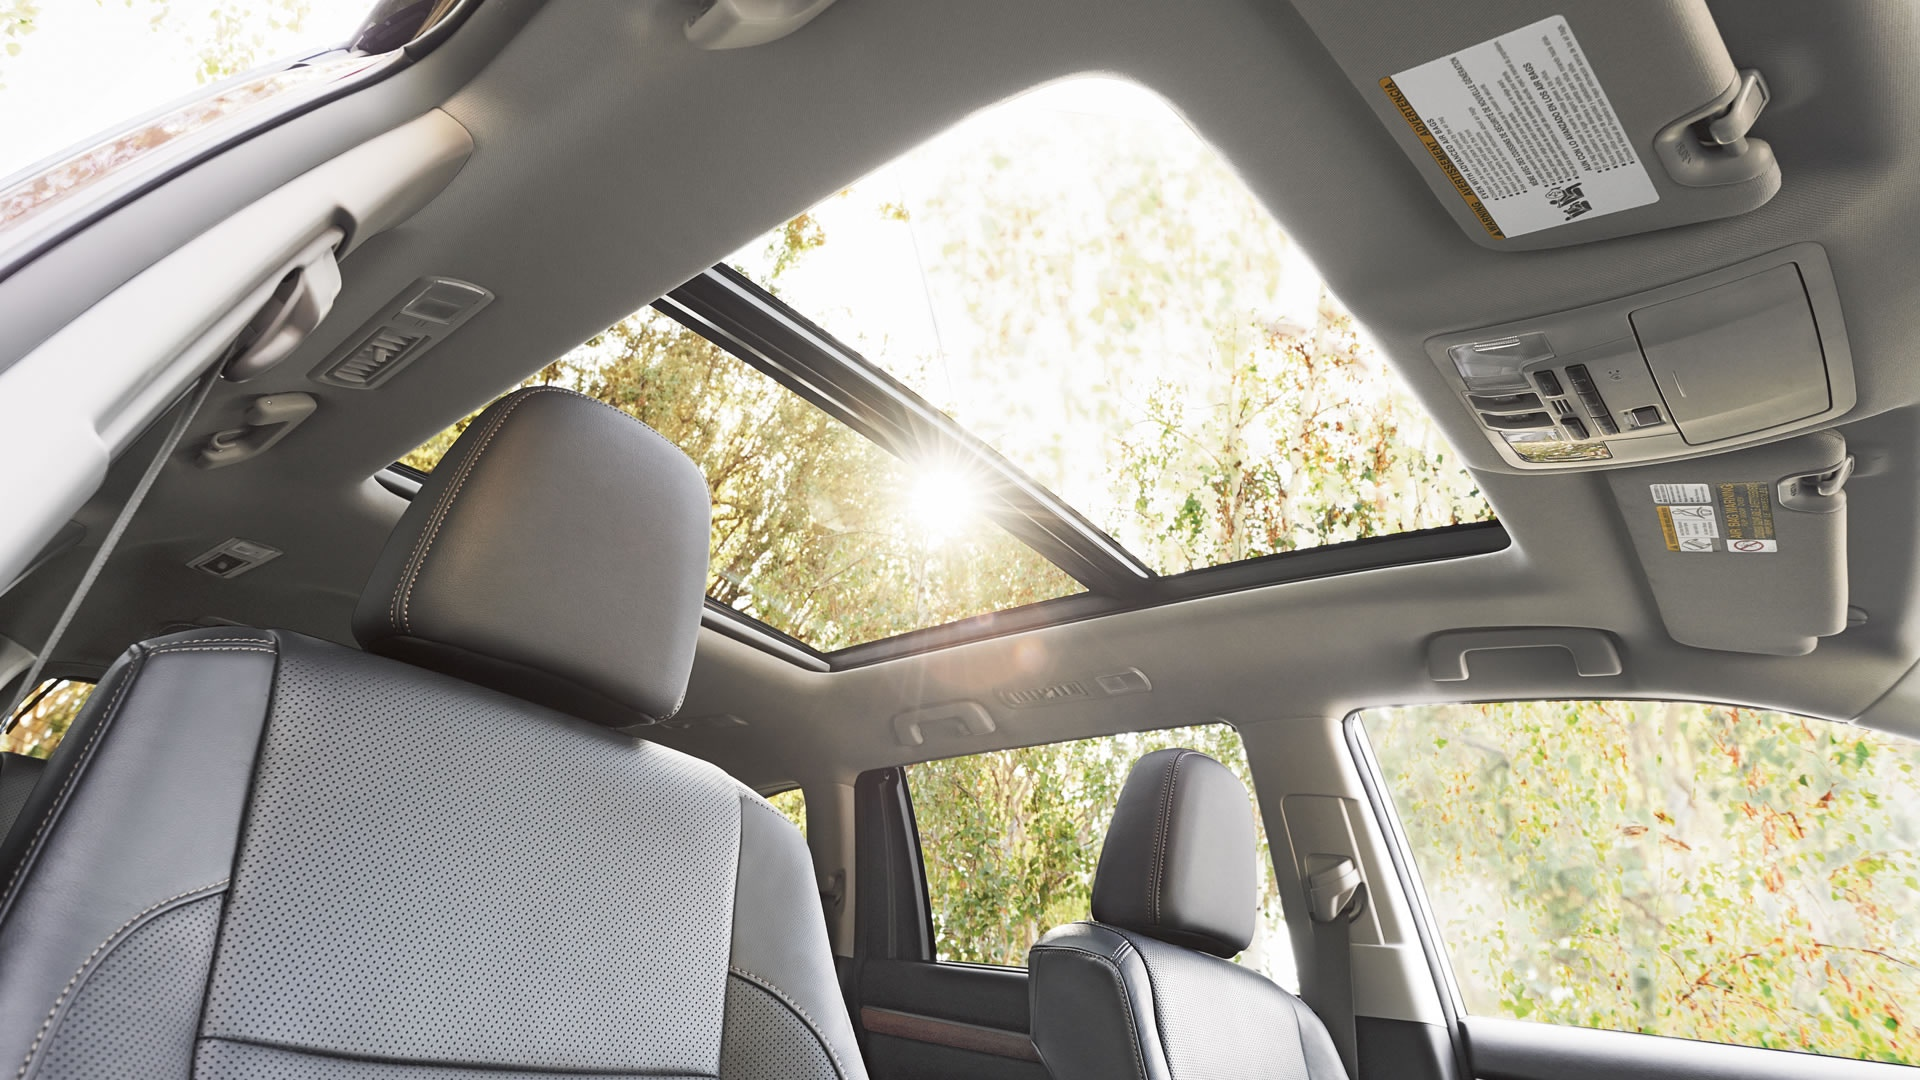 The Spacious Cabin of the Highlander